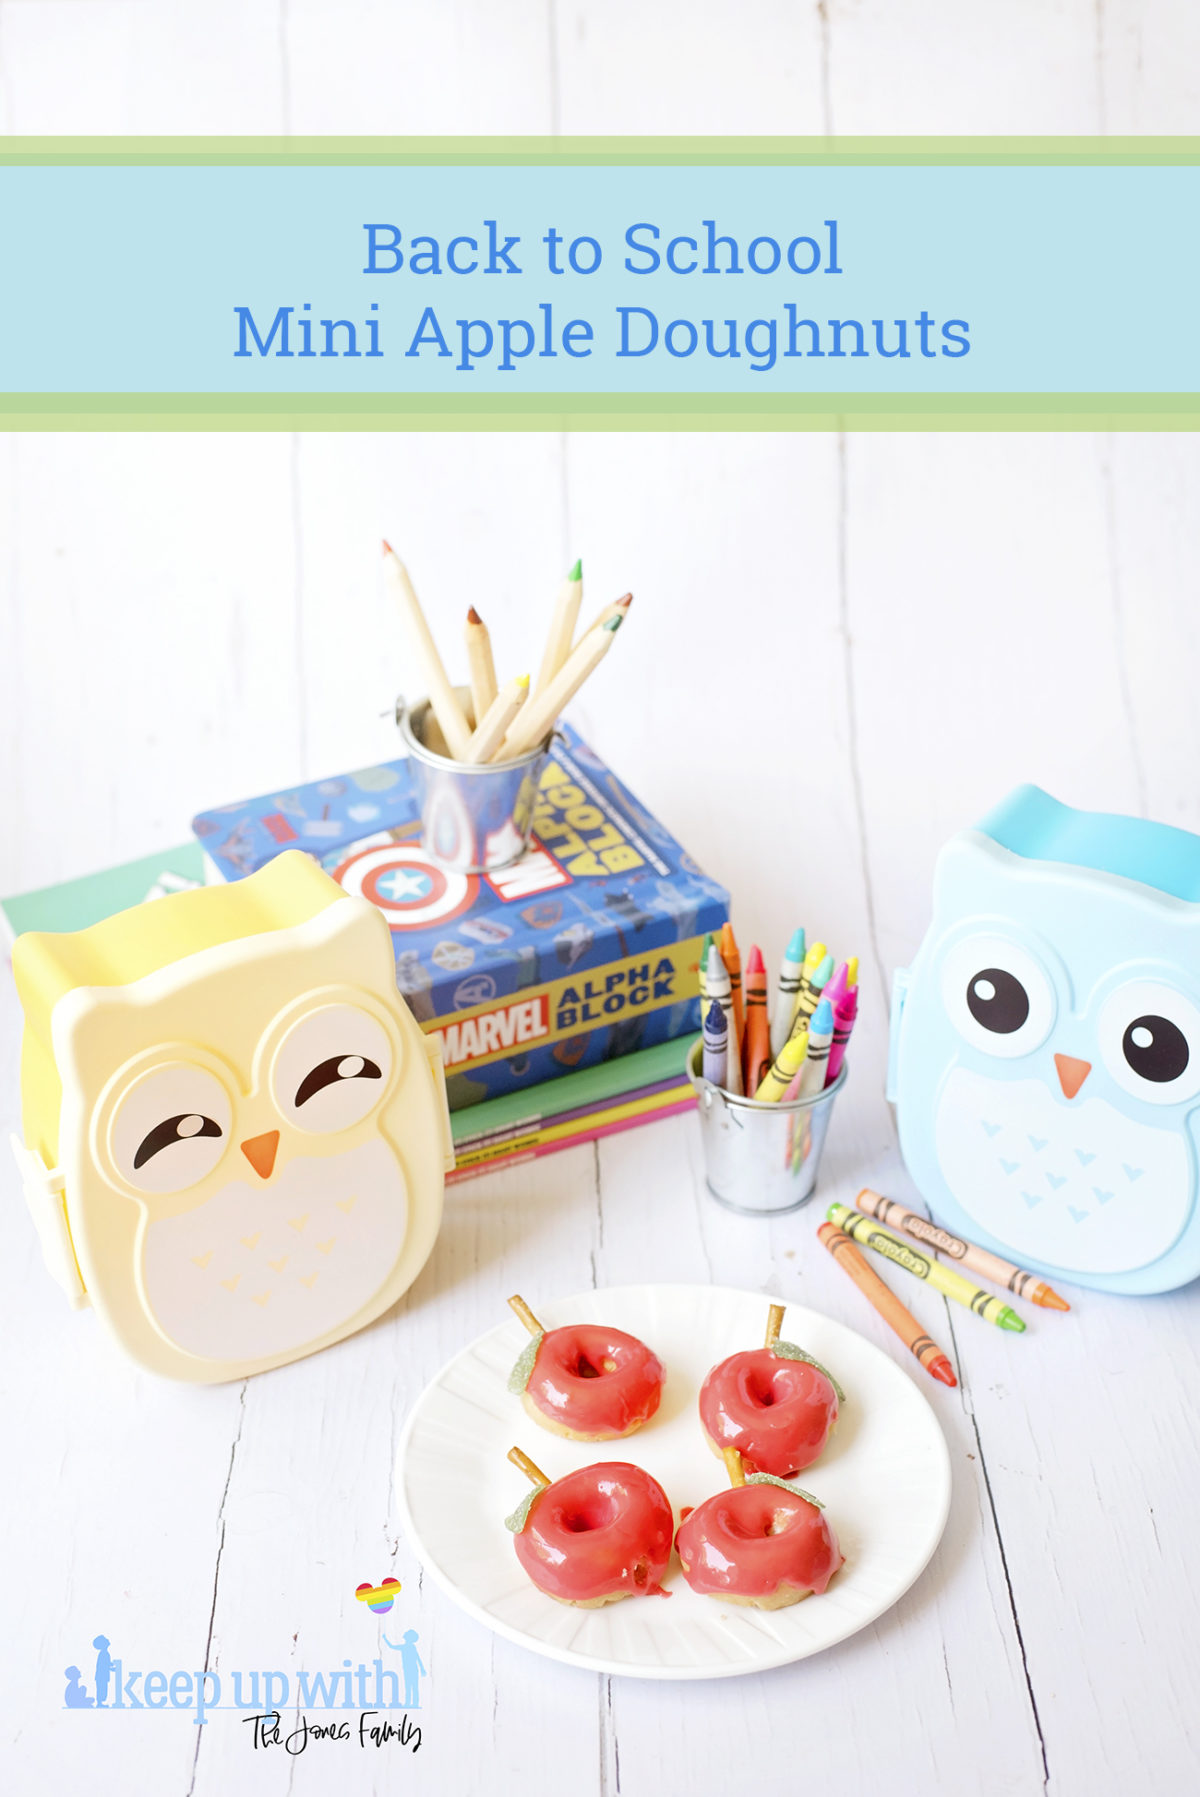 Image shows red apple shaped Back to School Doughnuts on a white Vera Wang plate, sitting on a white wooden surface. There are two small owl shaped bento boxes and books in the background, along with a bucket of crayola crayons. Image by Sara-Jayne from Keep Up With The Jones Family.